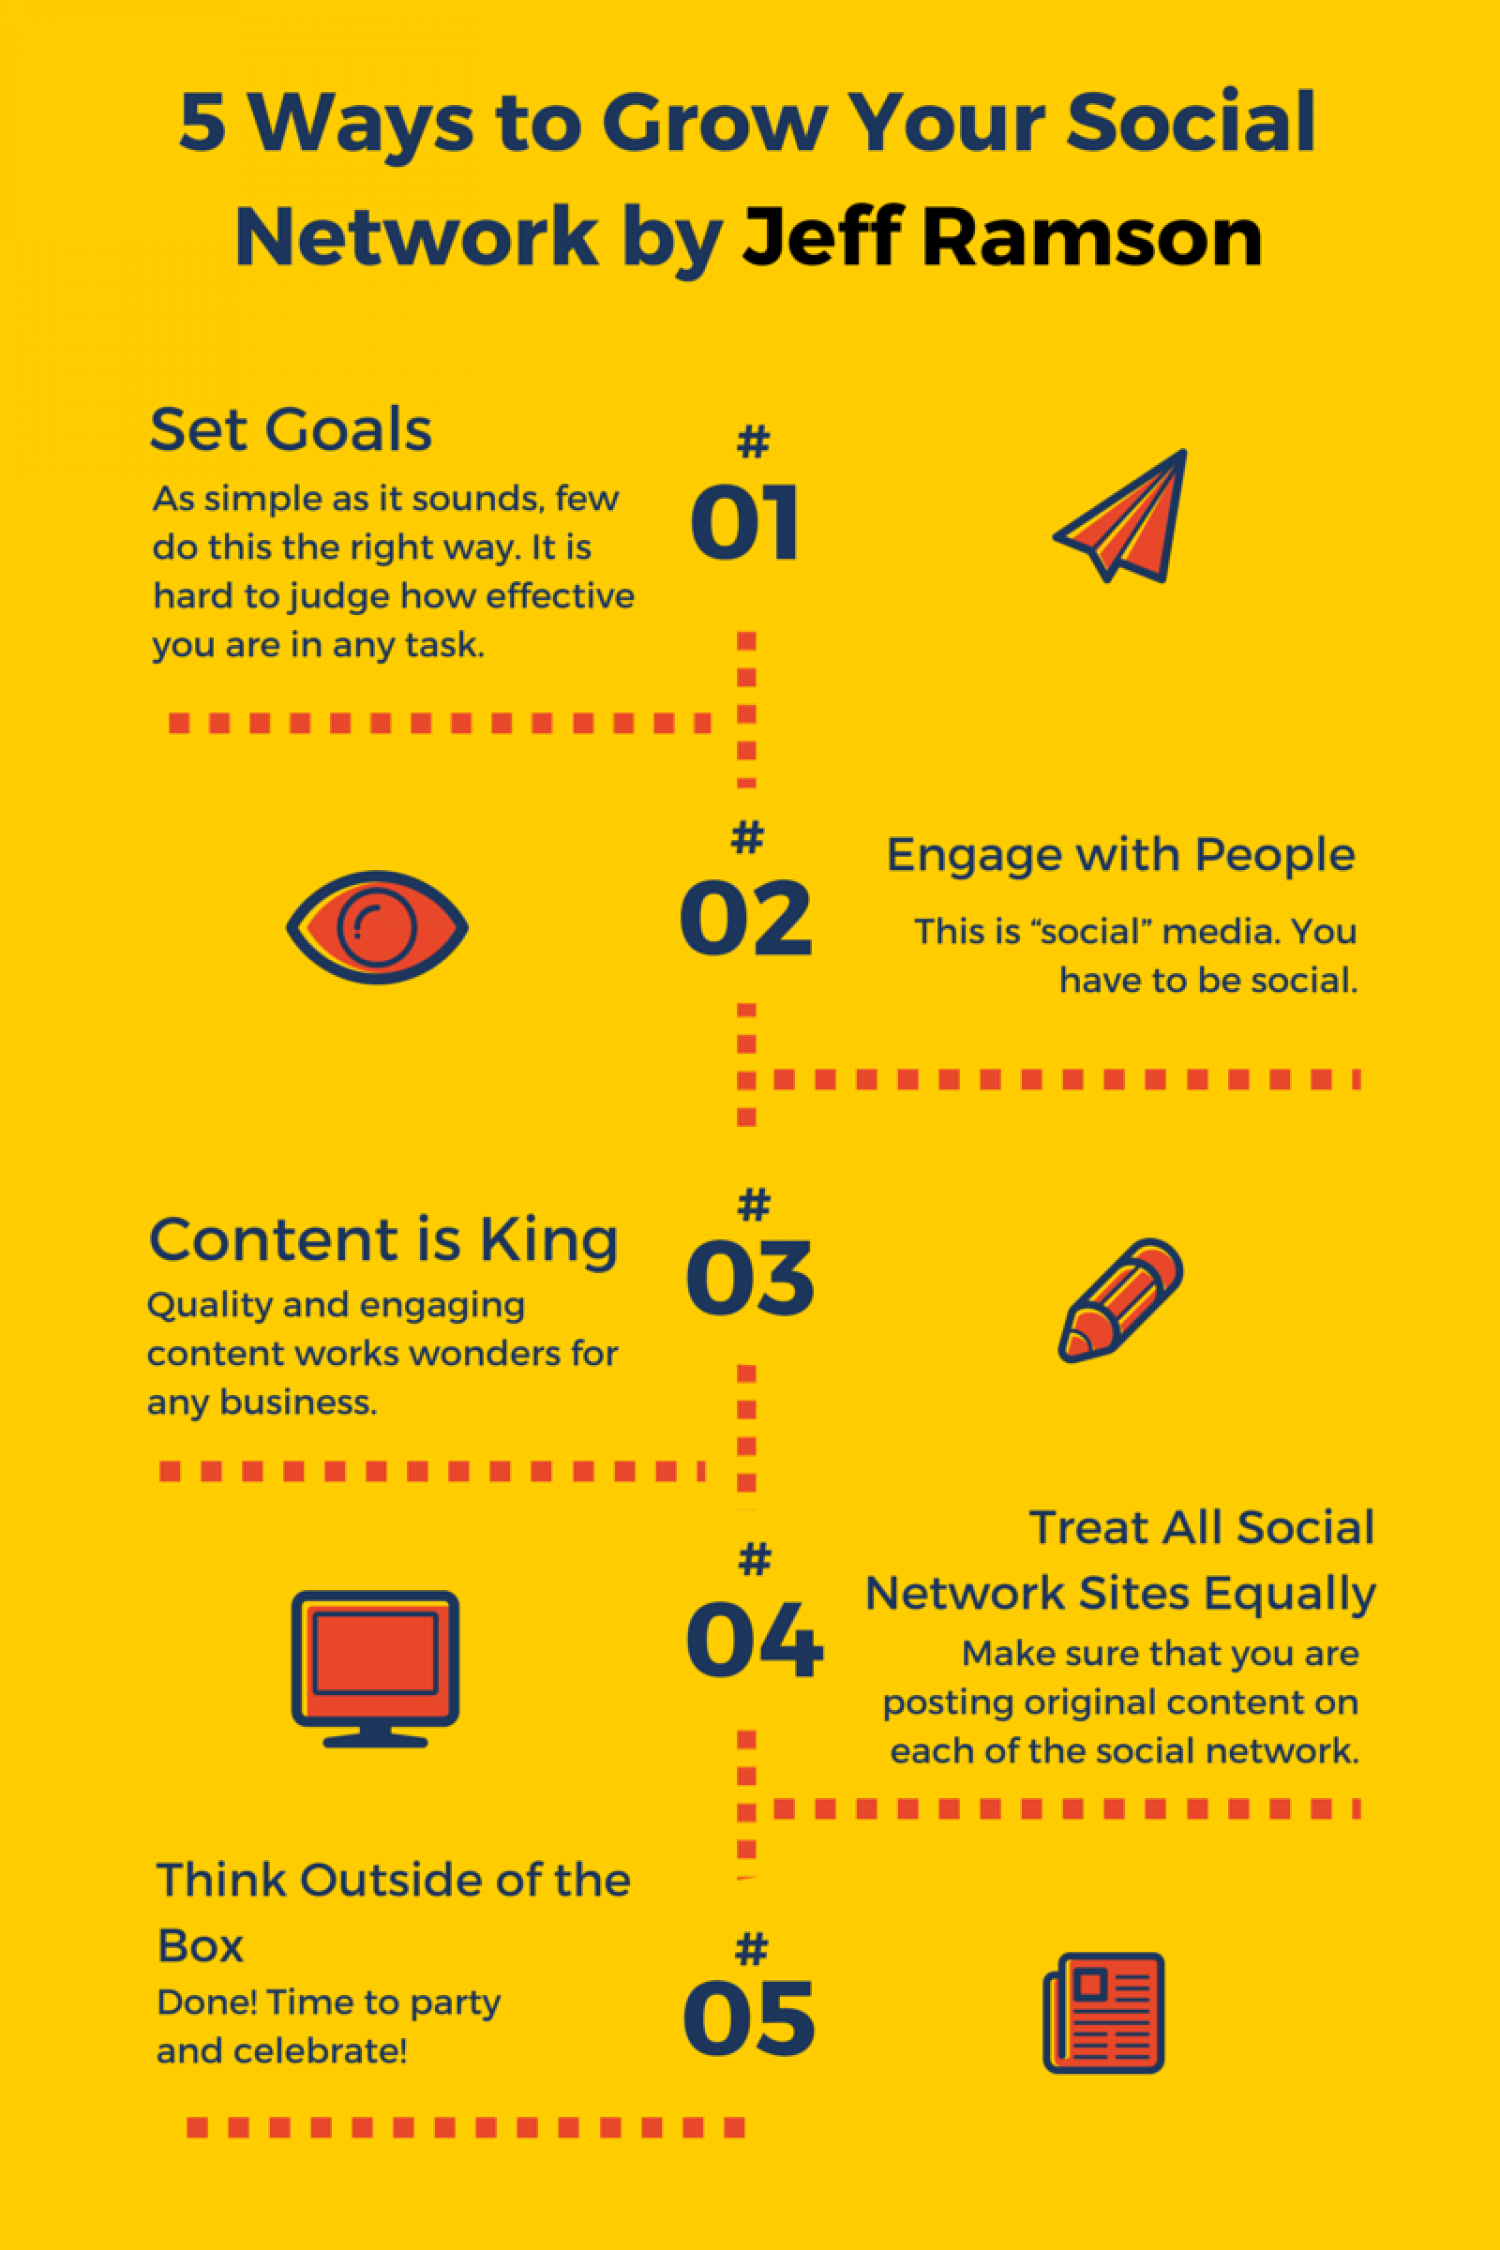 5 Ways to Grow Your Social Network Infographic